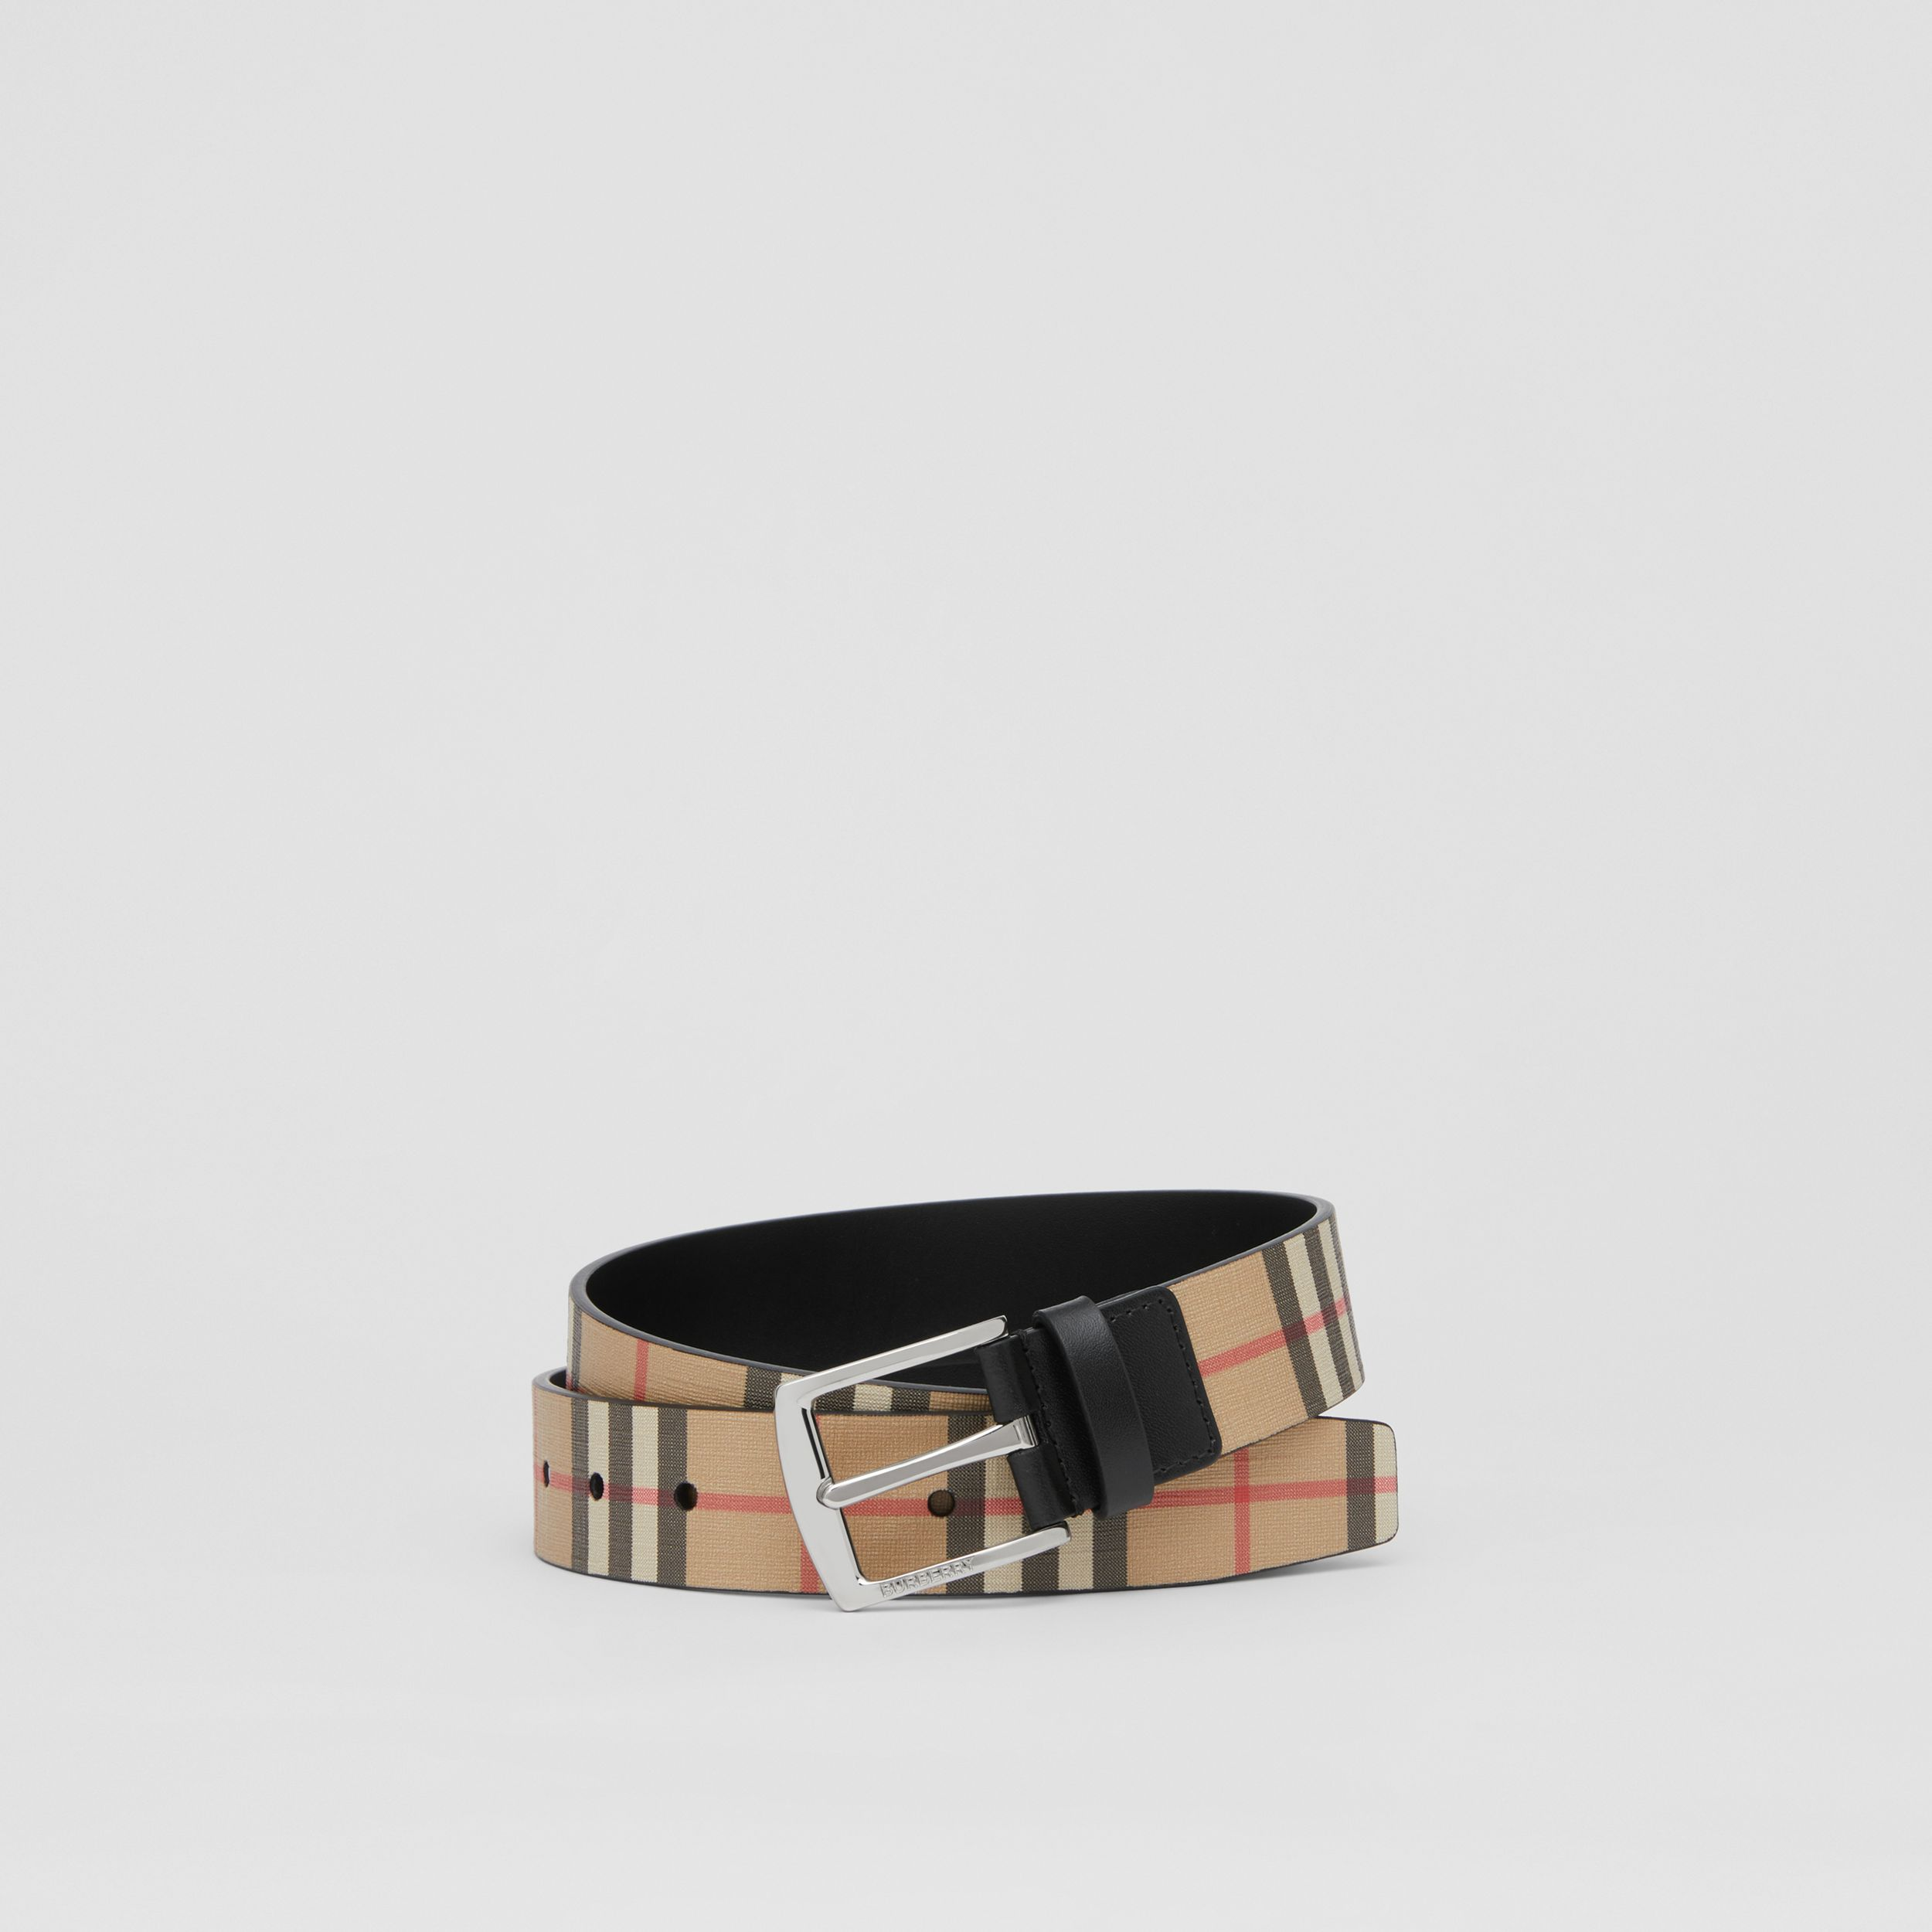 Cintura in e-canvas Vintage check e pelle (Beige Archivio) - Uomo | Burberry - 1